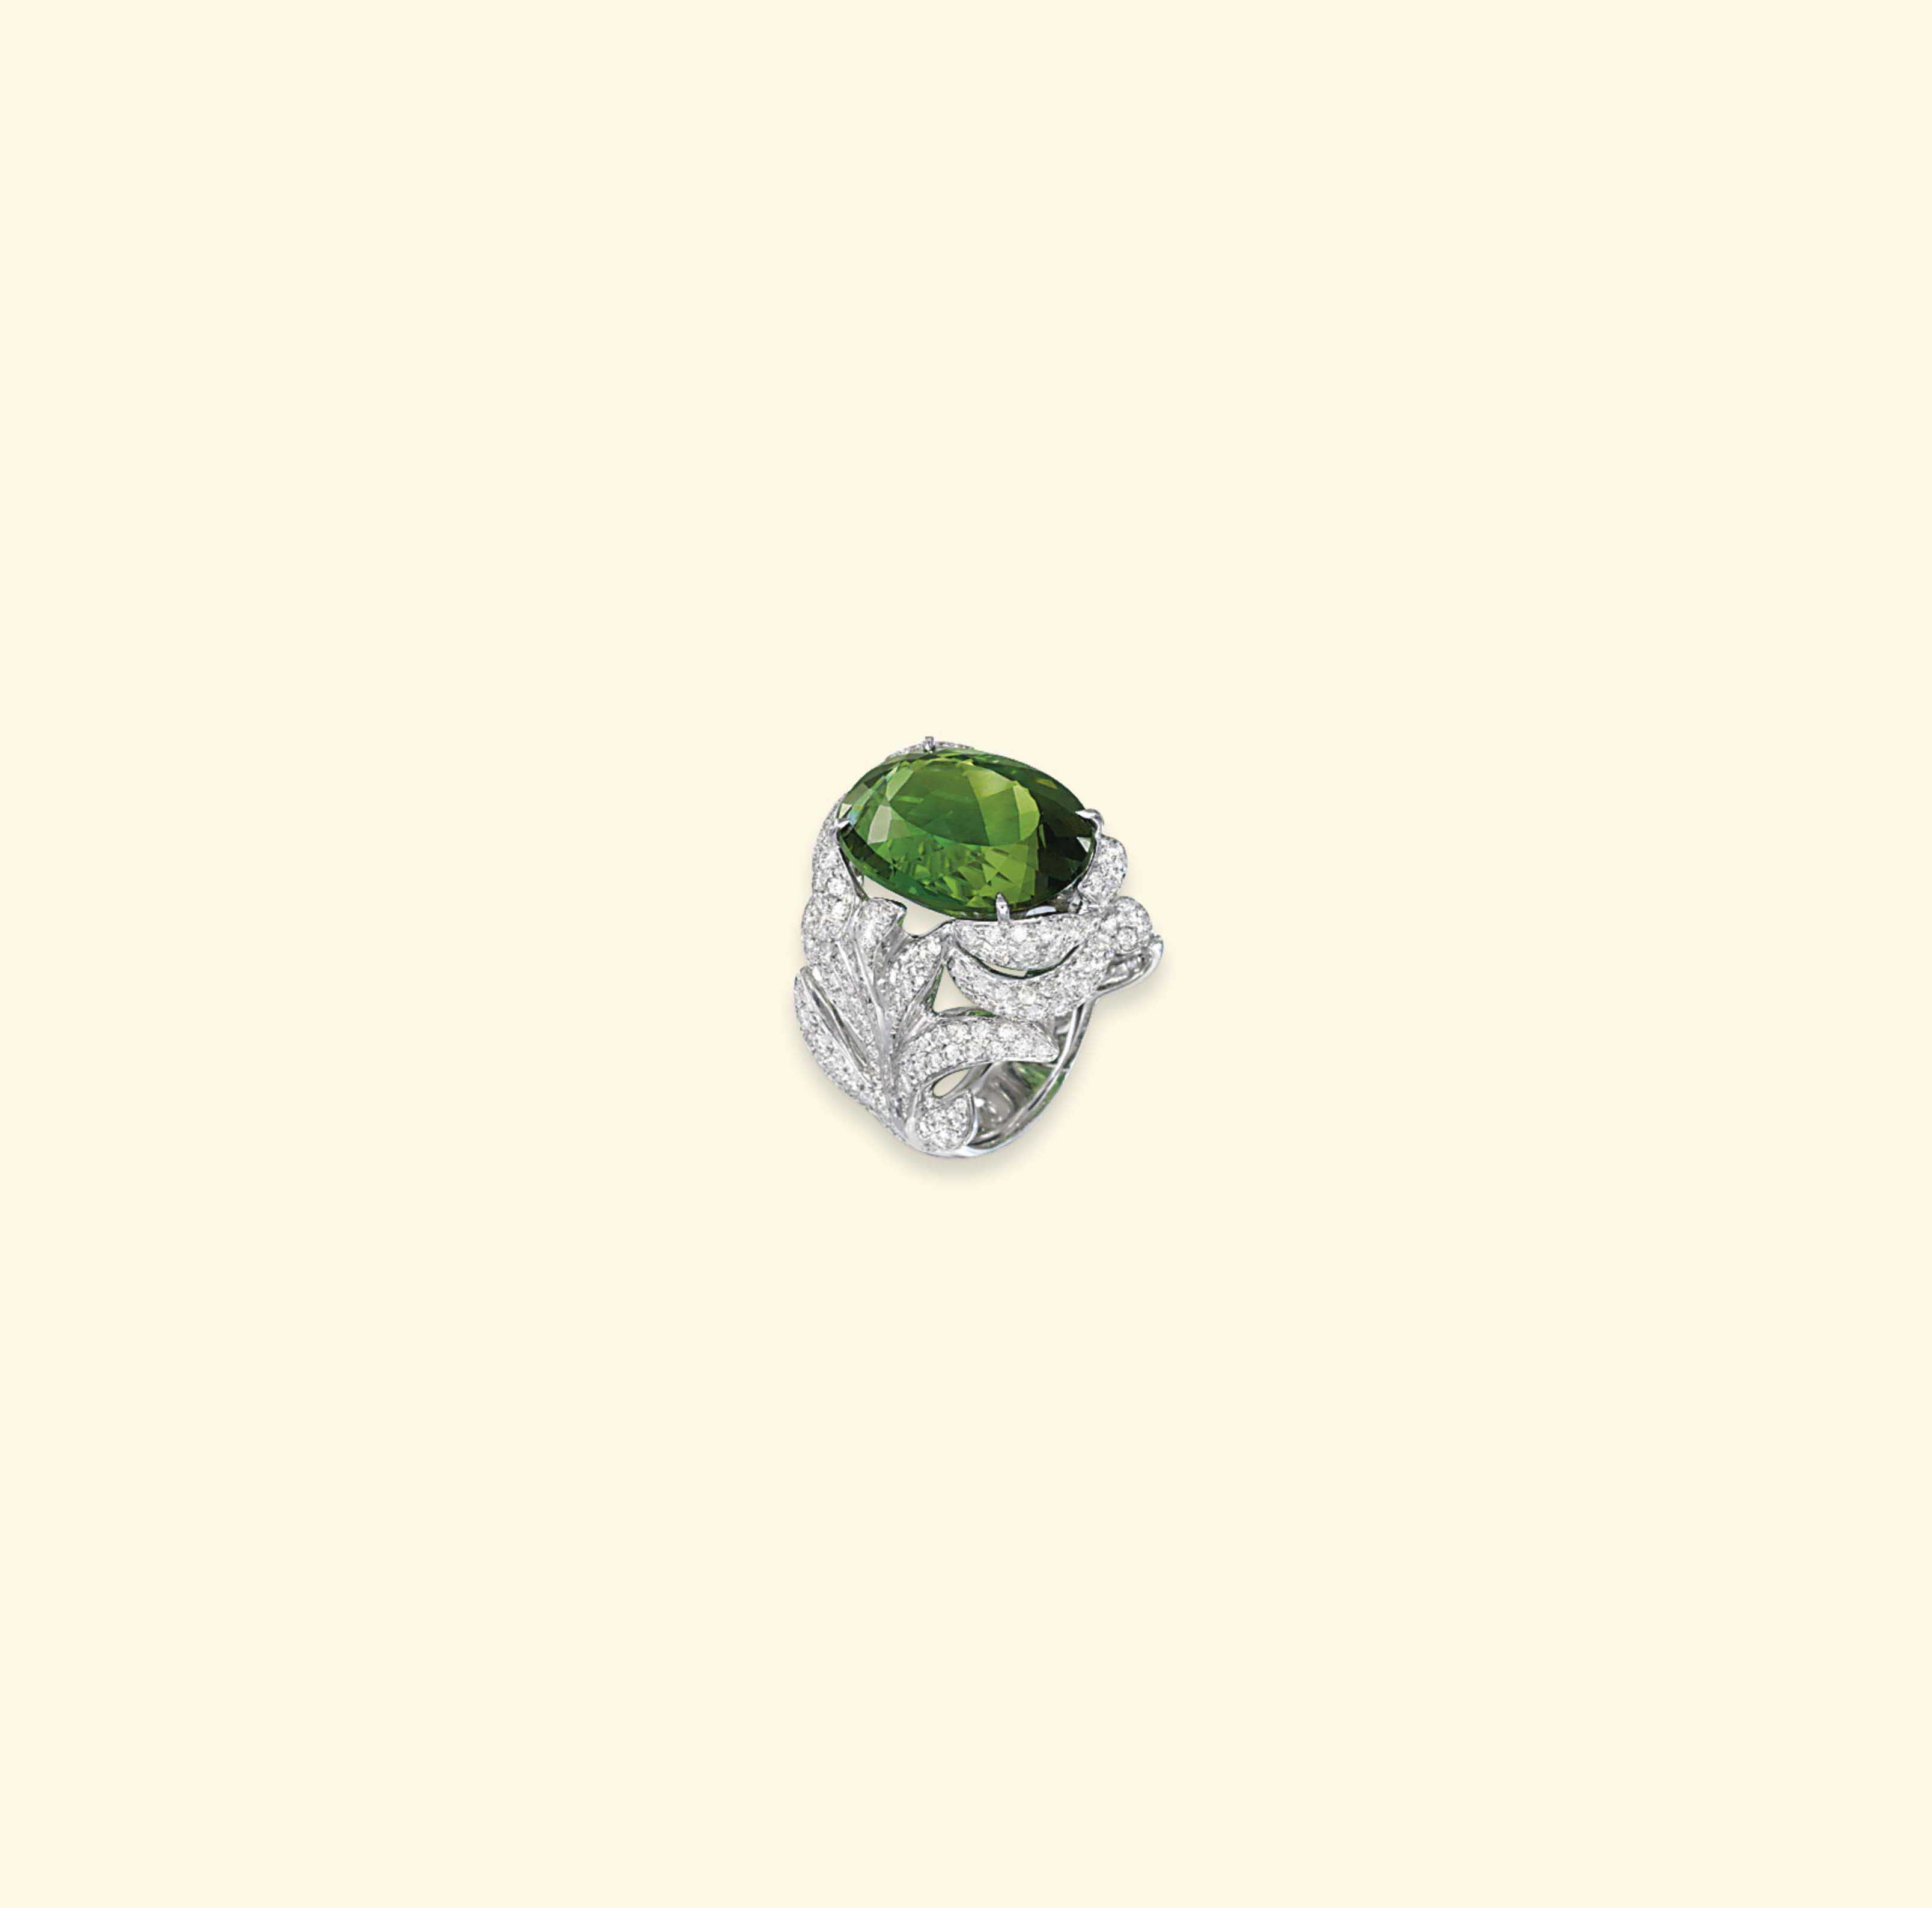 A GREEN TOURMALINE AND DIAMOND RING, BY MARGHERITA BURGENER